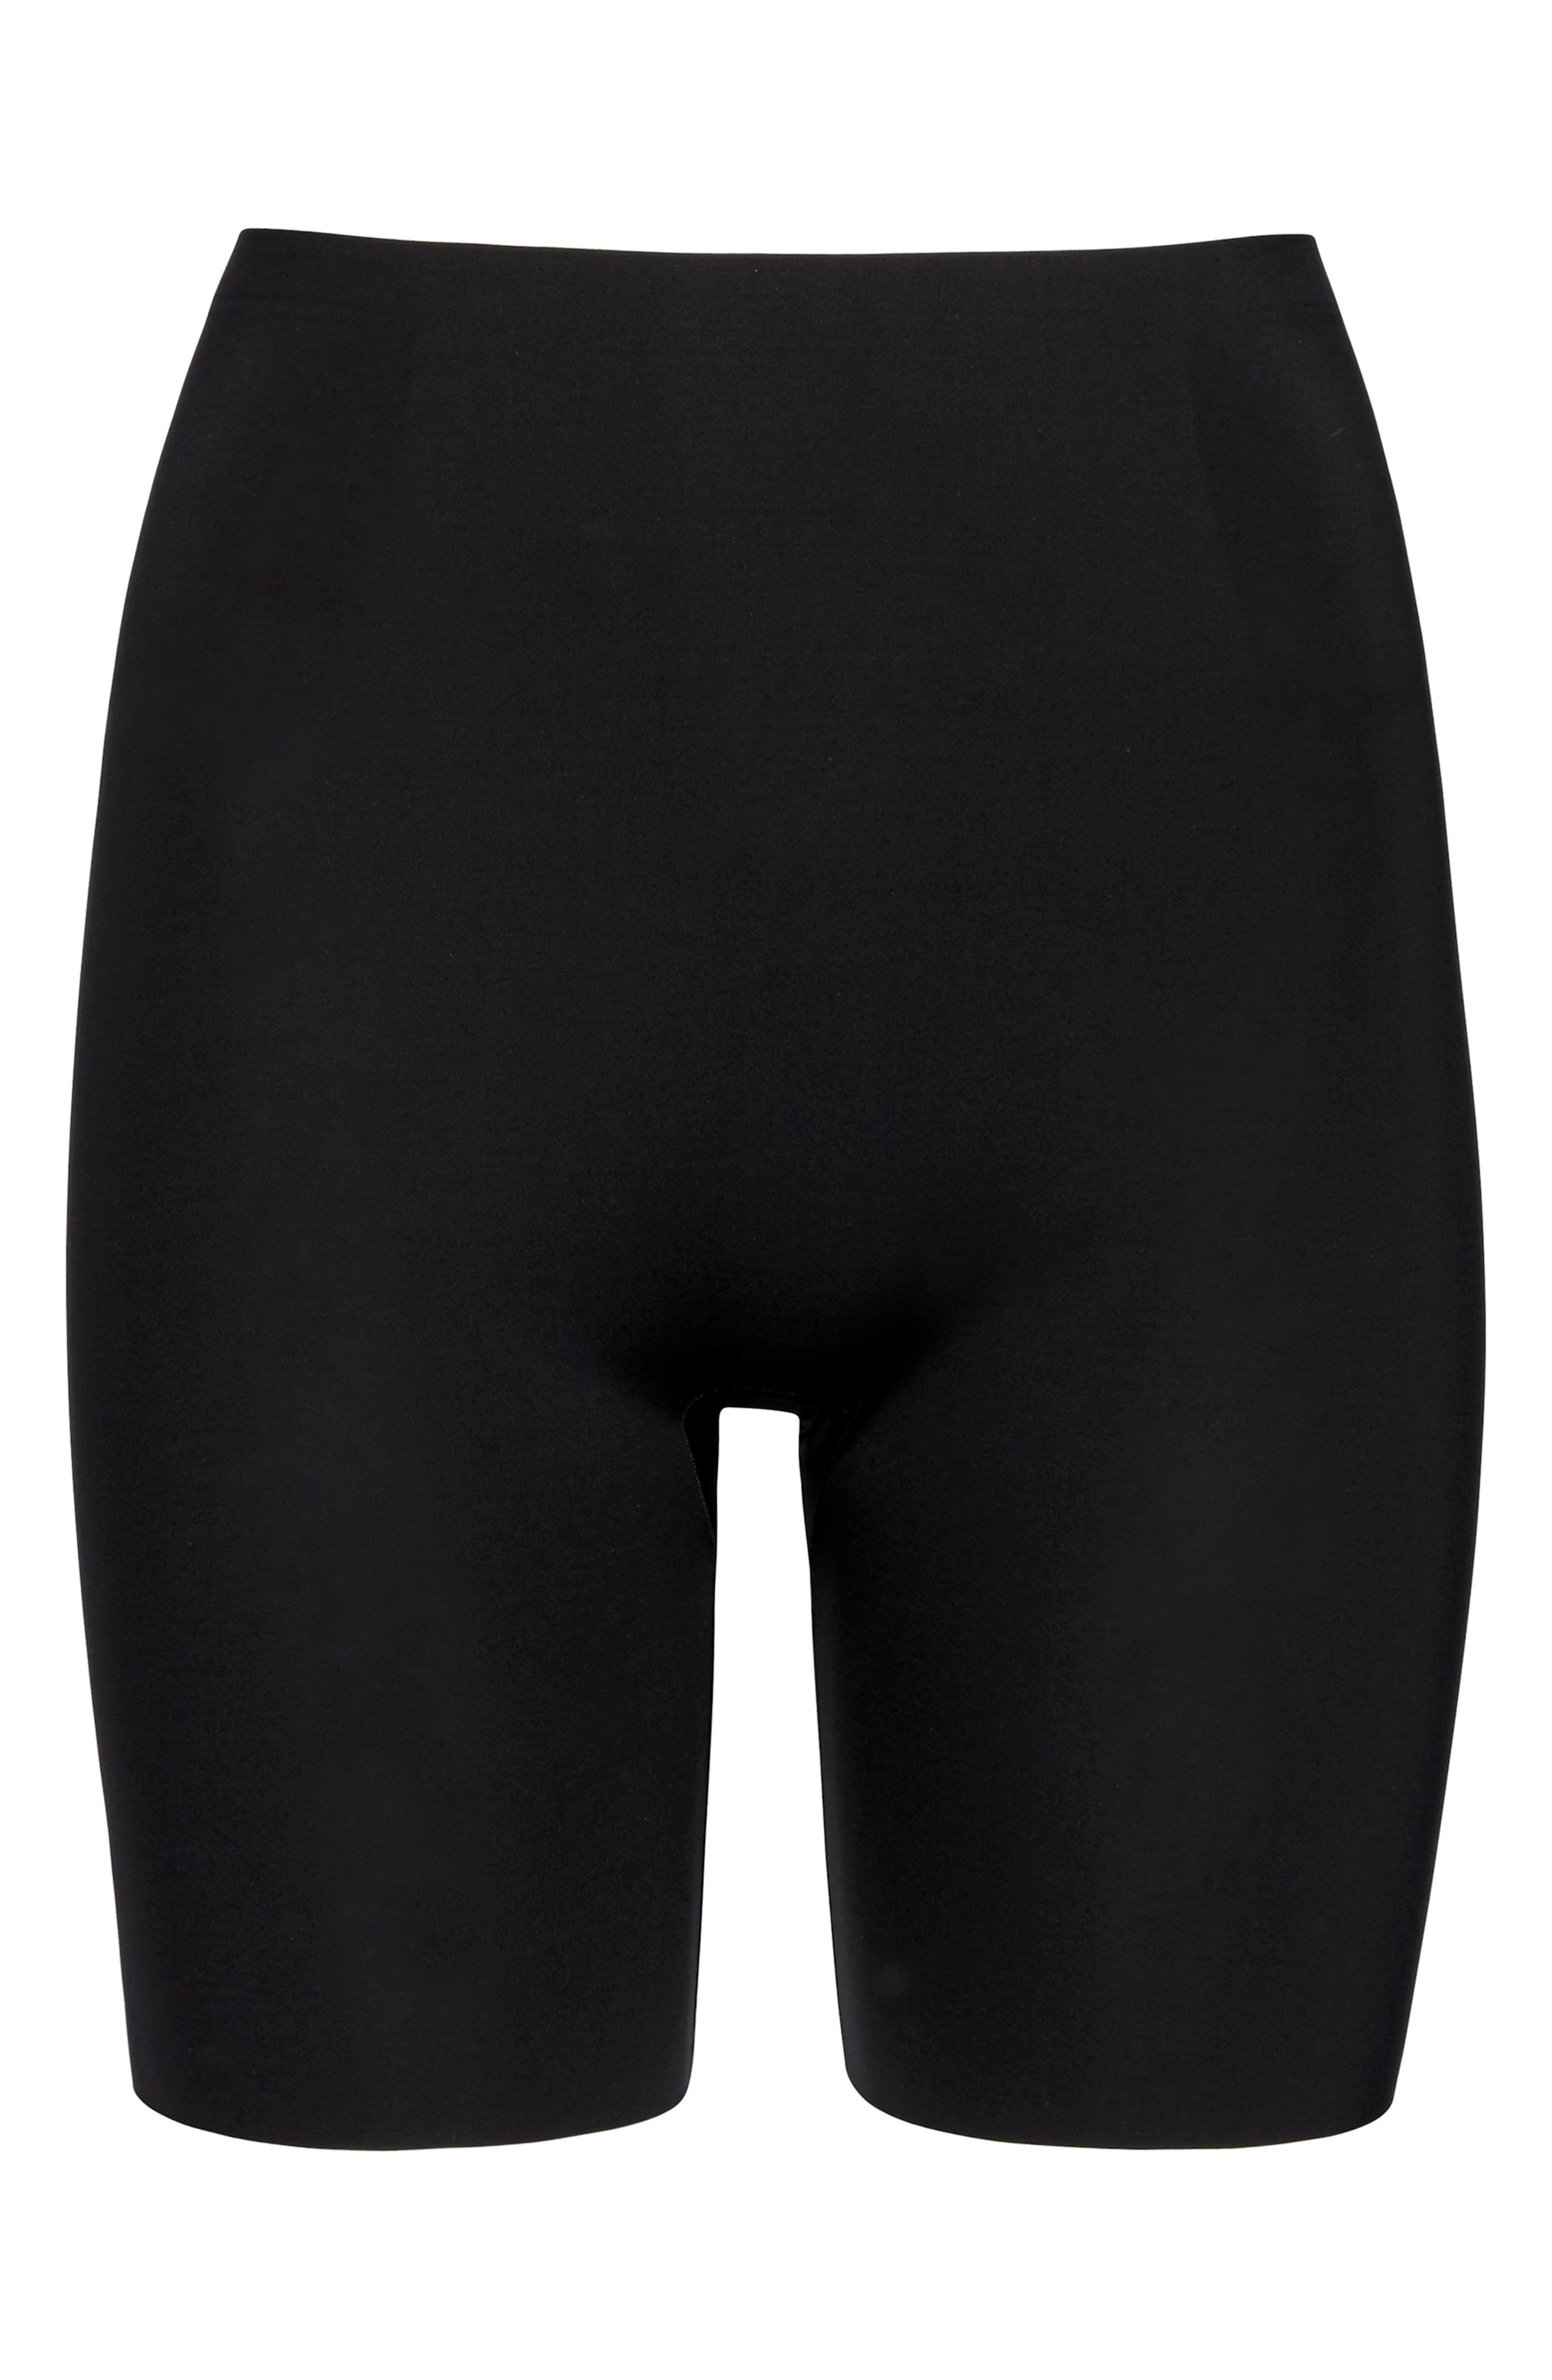 Thinstincts Mid Thigh Shorts,                         Main,                         color, VERY BLACK